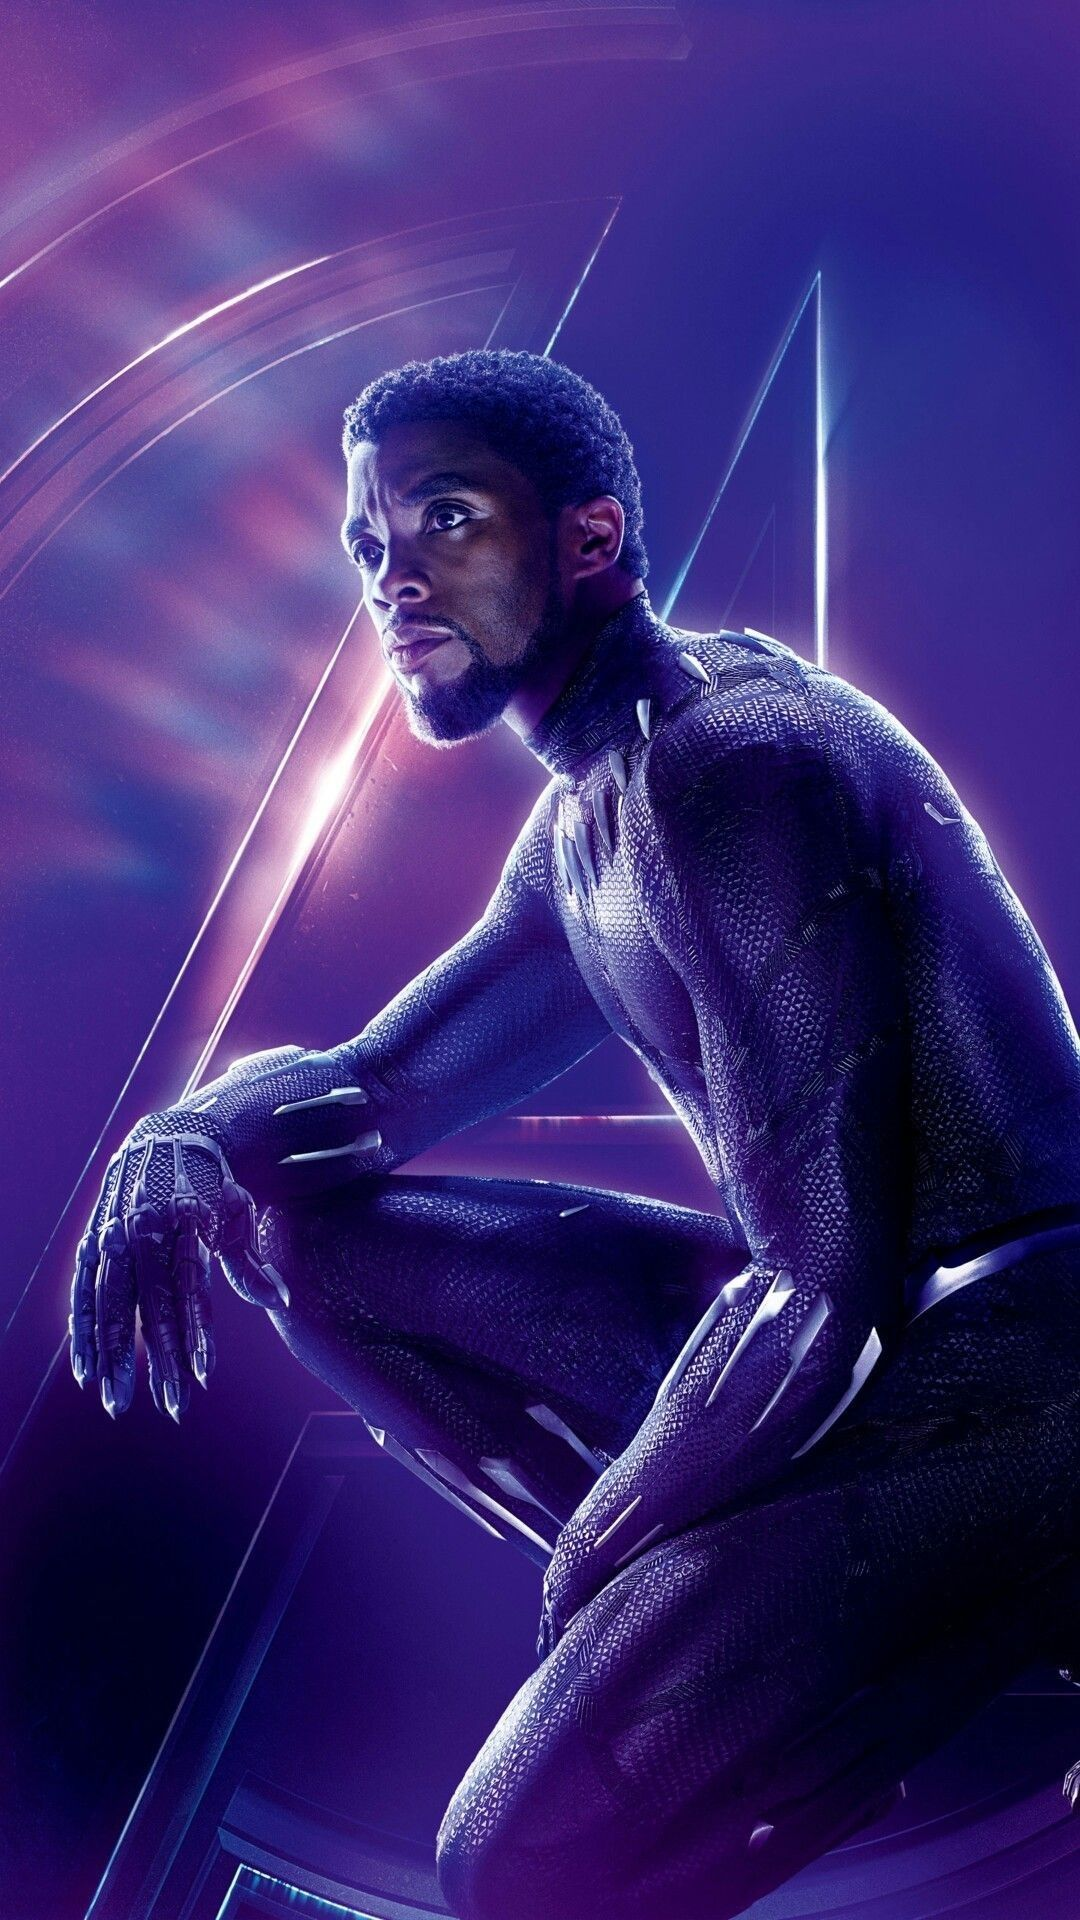 Avengers infinity war jrs Black panther t'challa   wallpapers   Pinterest